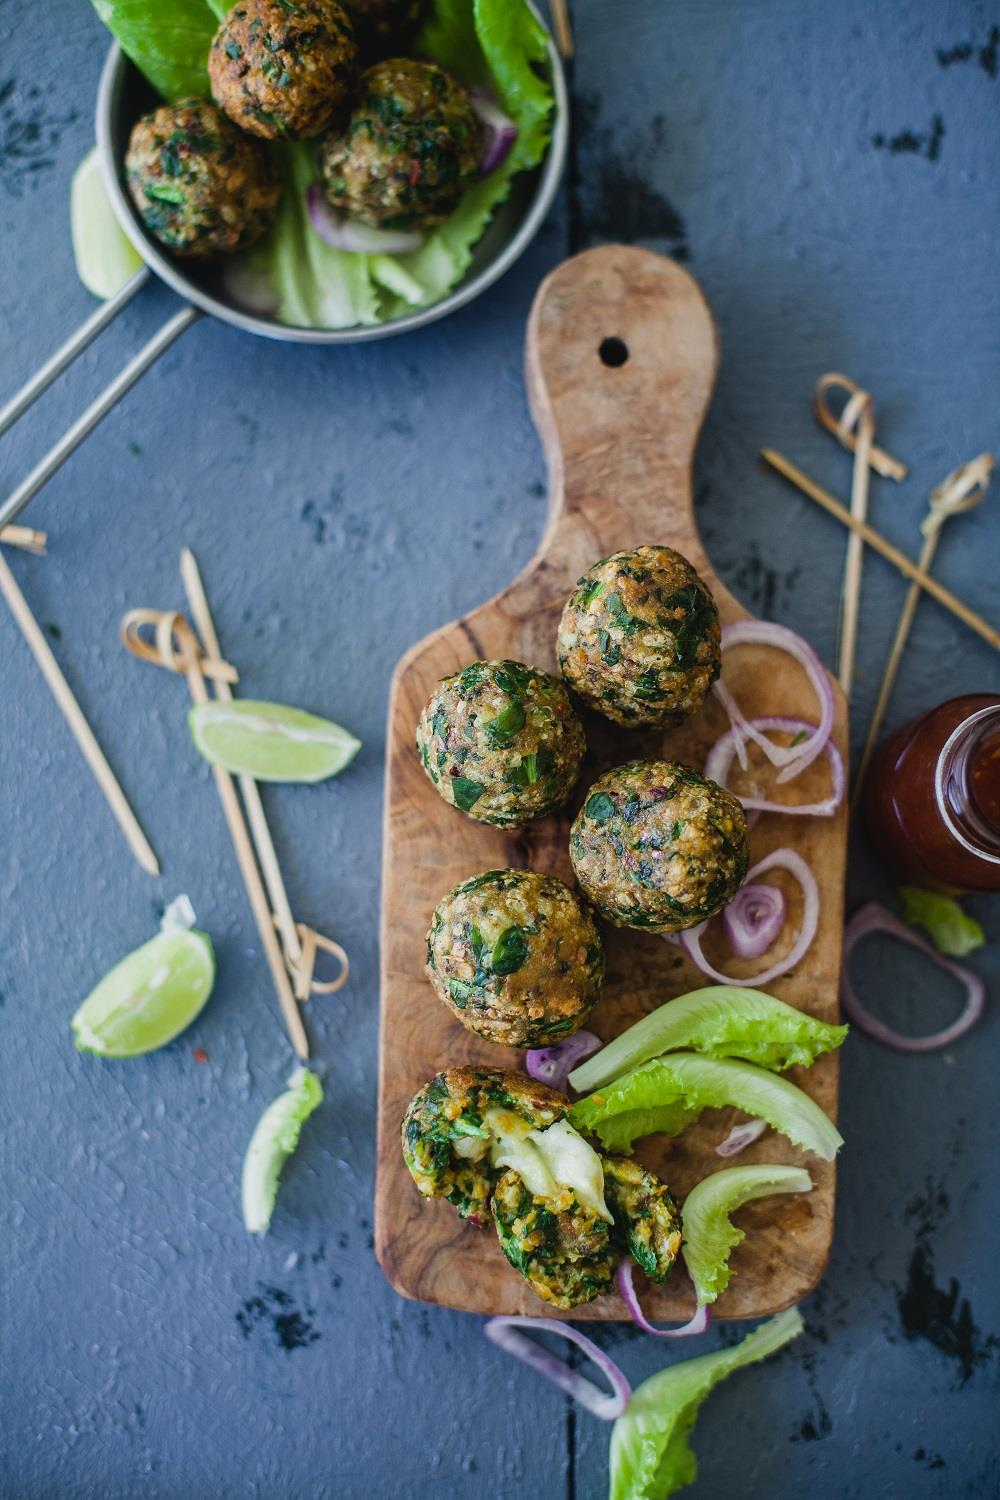 Whip up a delicious, hot #snack for your family using ingredients sitting in your pantry. Try this Spinach Cheese Balls #recipe by @playfulcooking which will surely have your loved ones asking for more!